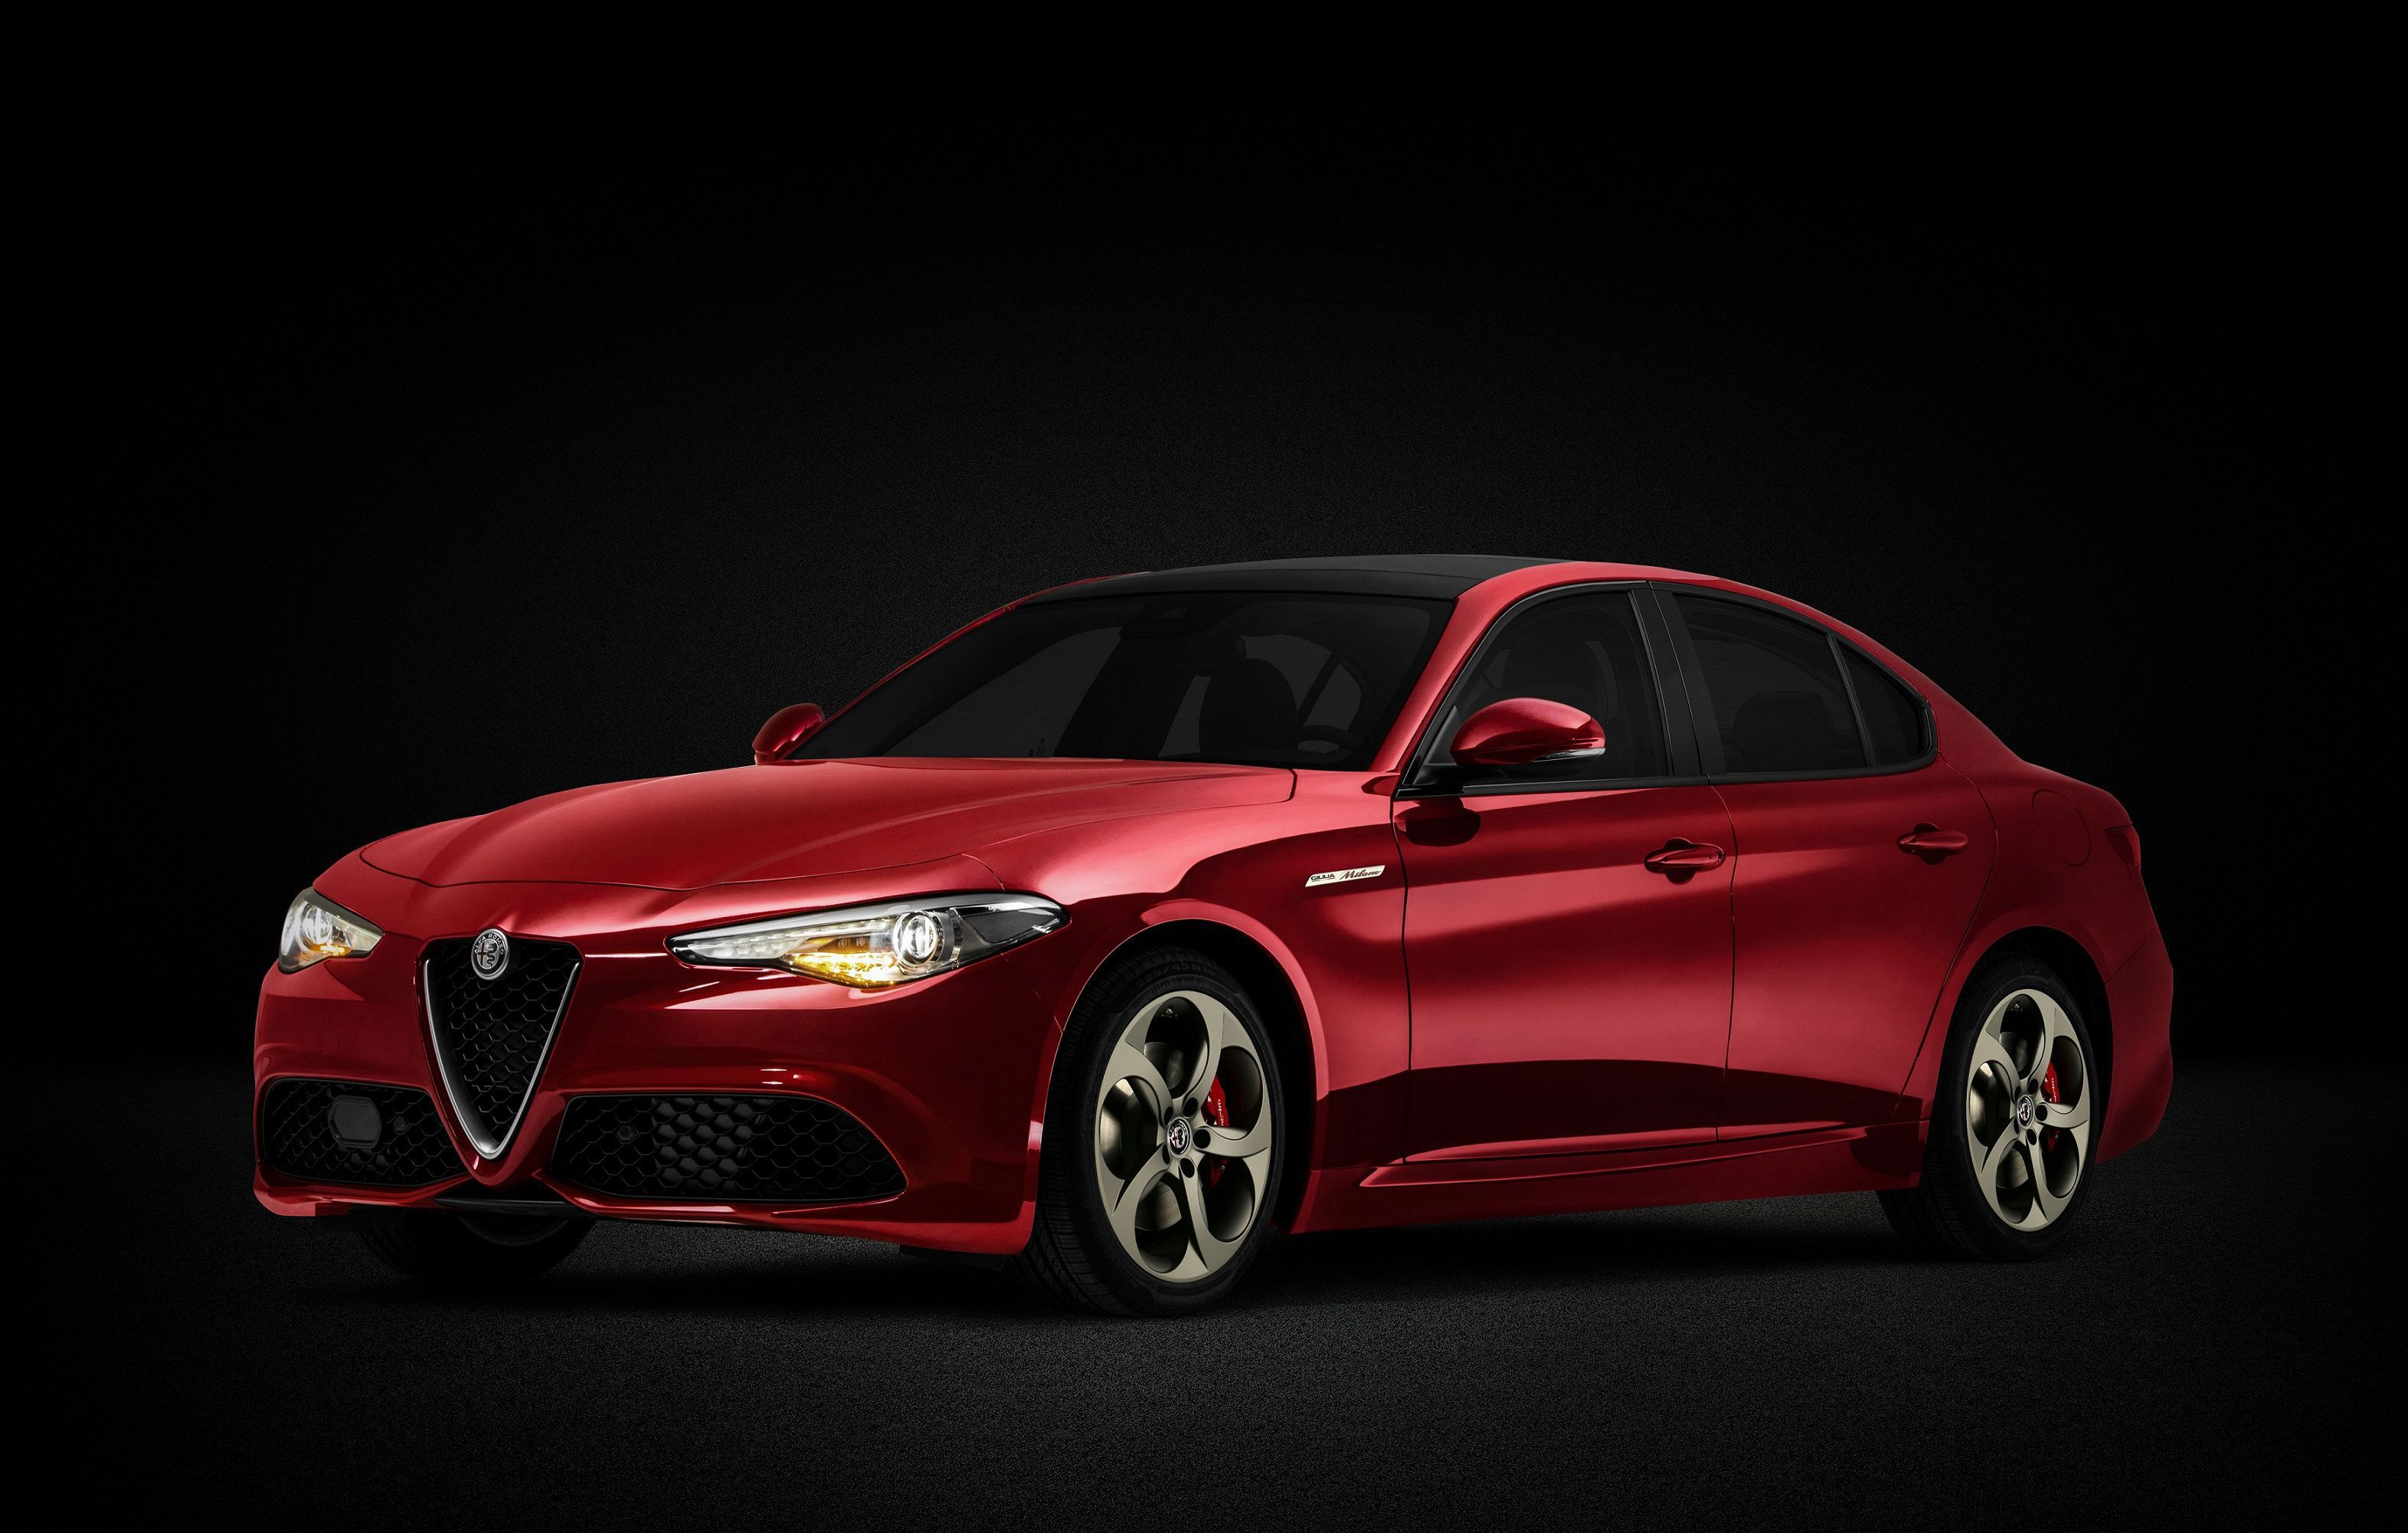 alfa romeo giulia wallpapers backgrounds. Black Bedroom Furniture Sets. Home Design Ideas